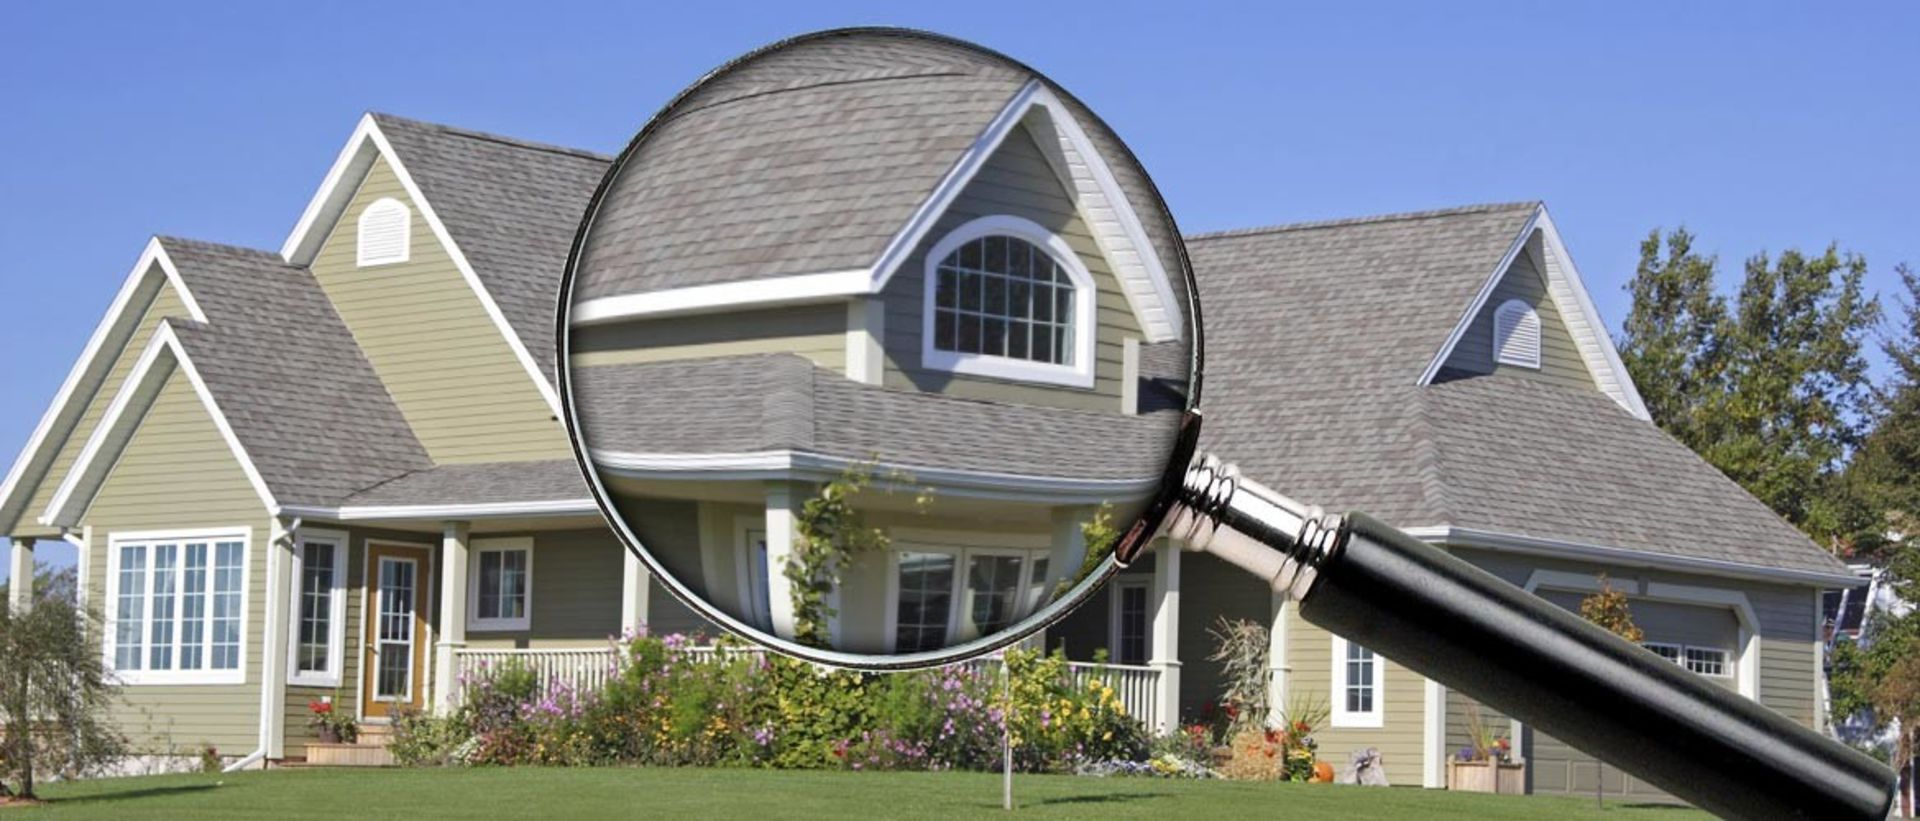 Buyers – What to Expect at Home Inspection